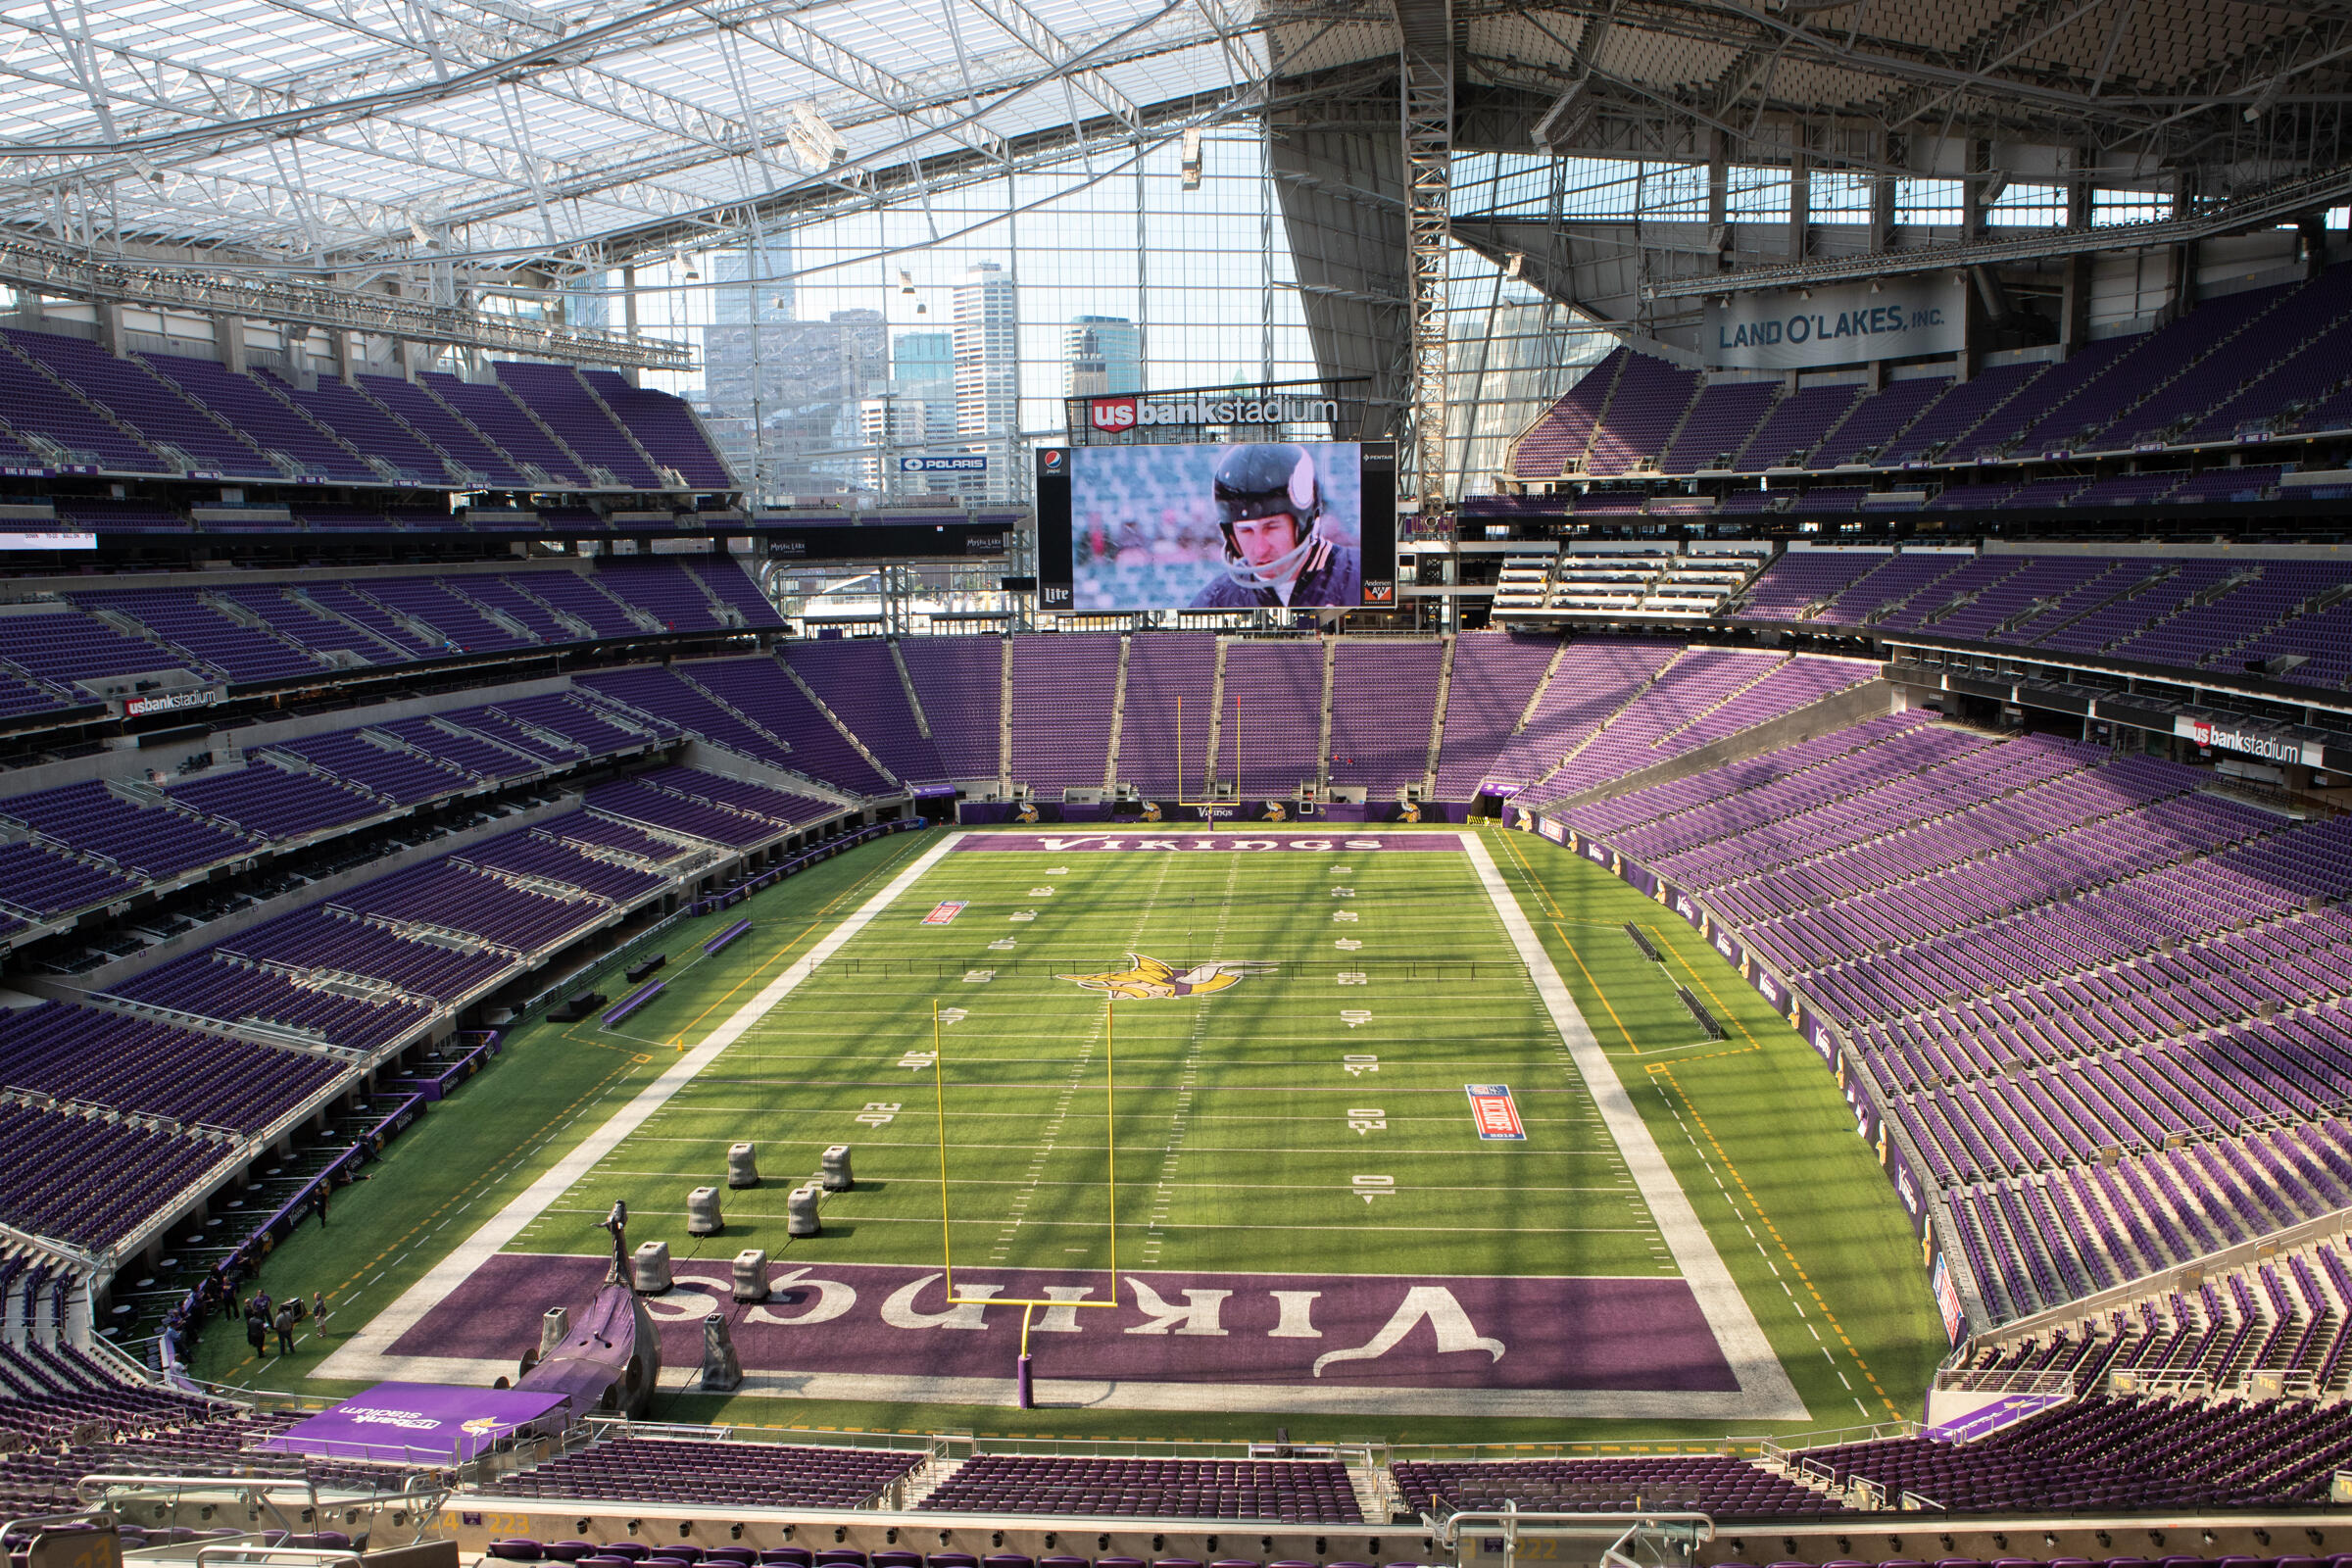 From many of U.S. Bank Stadium's 66,000-plus seats fans can get a view of the downtown Minneapolis skyline. The translucent plastic roof, made of a material called ETFE, allows daylight to pour into the building from above. Camilla Cerea/Audubon